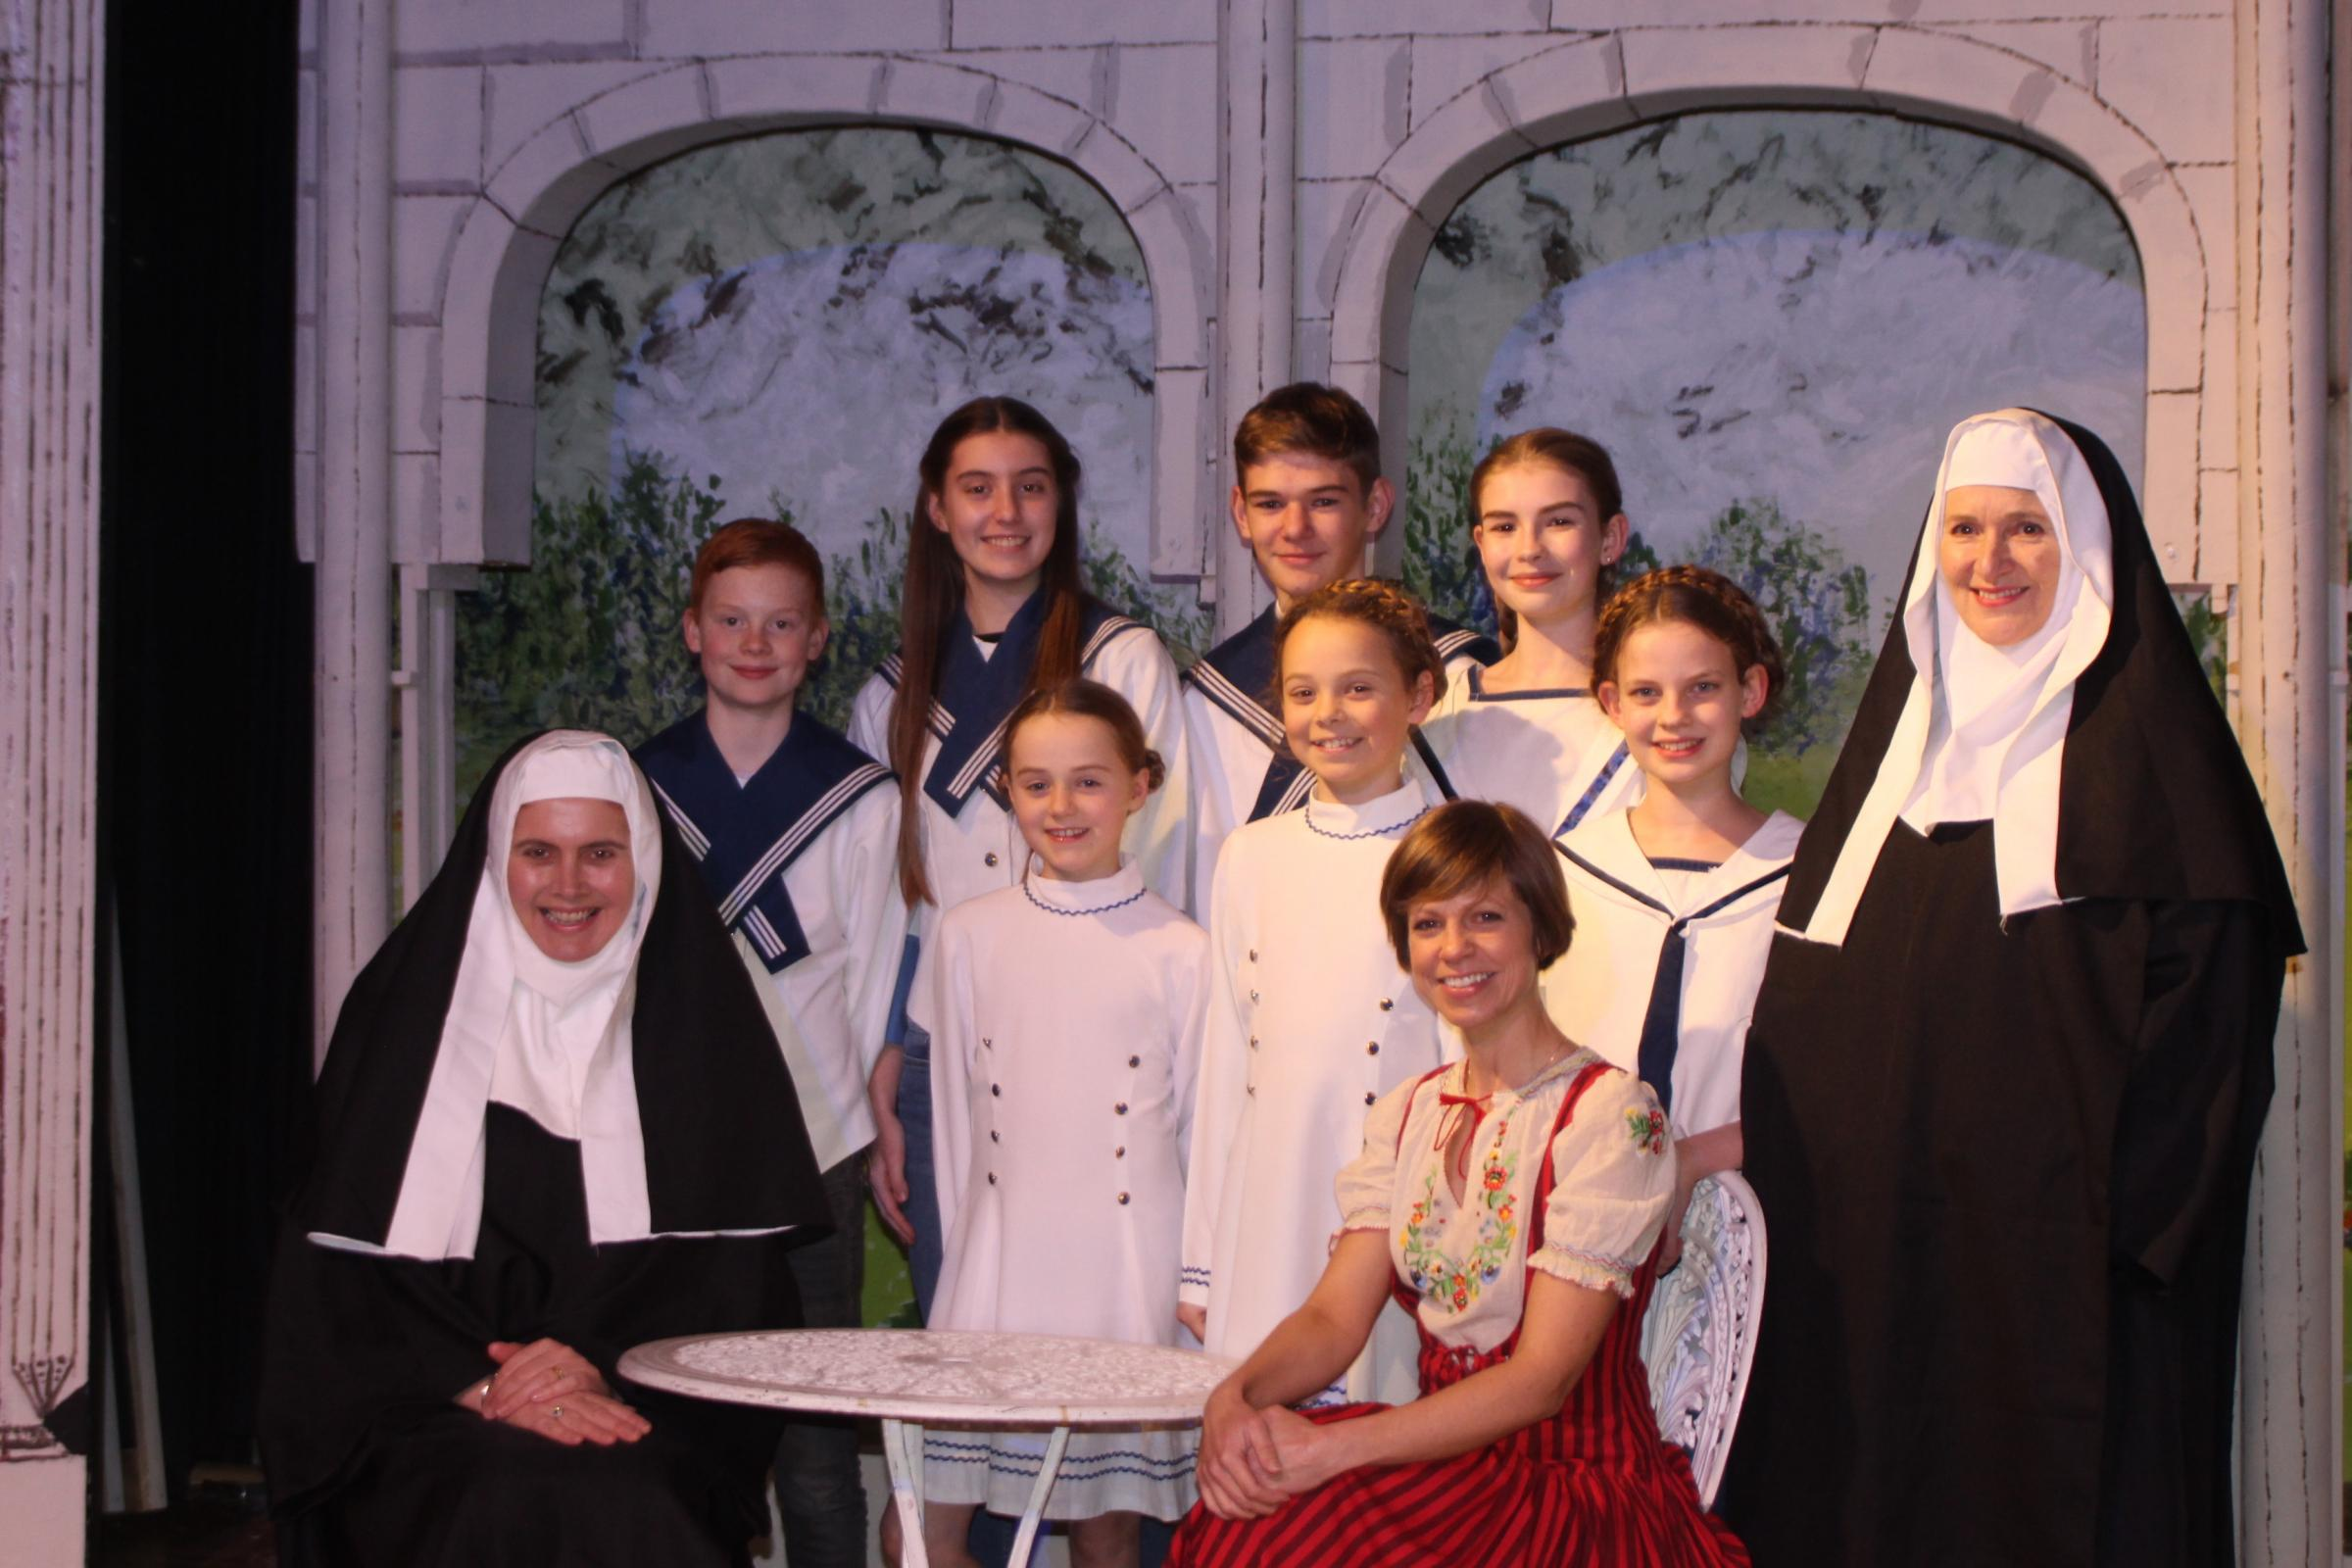 The Tockington Parish Players have sold out their production of The Sound of Music